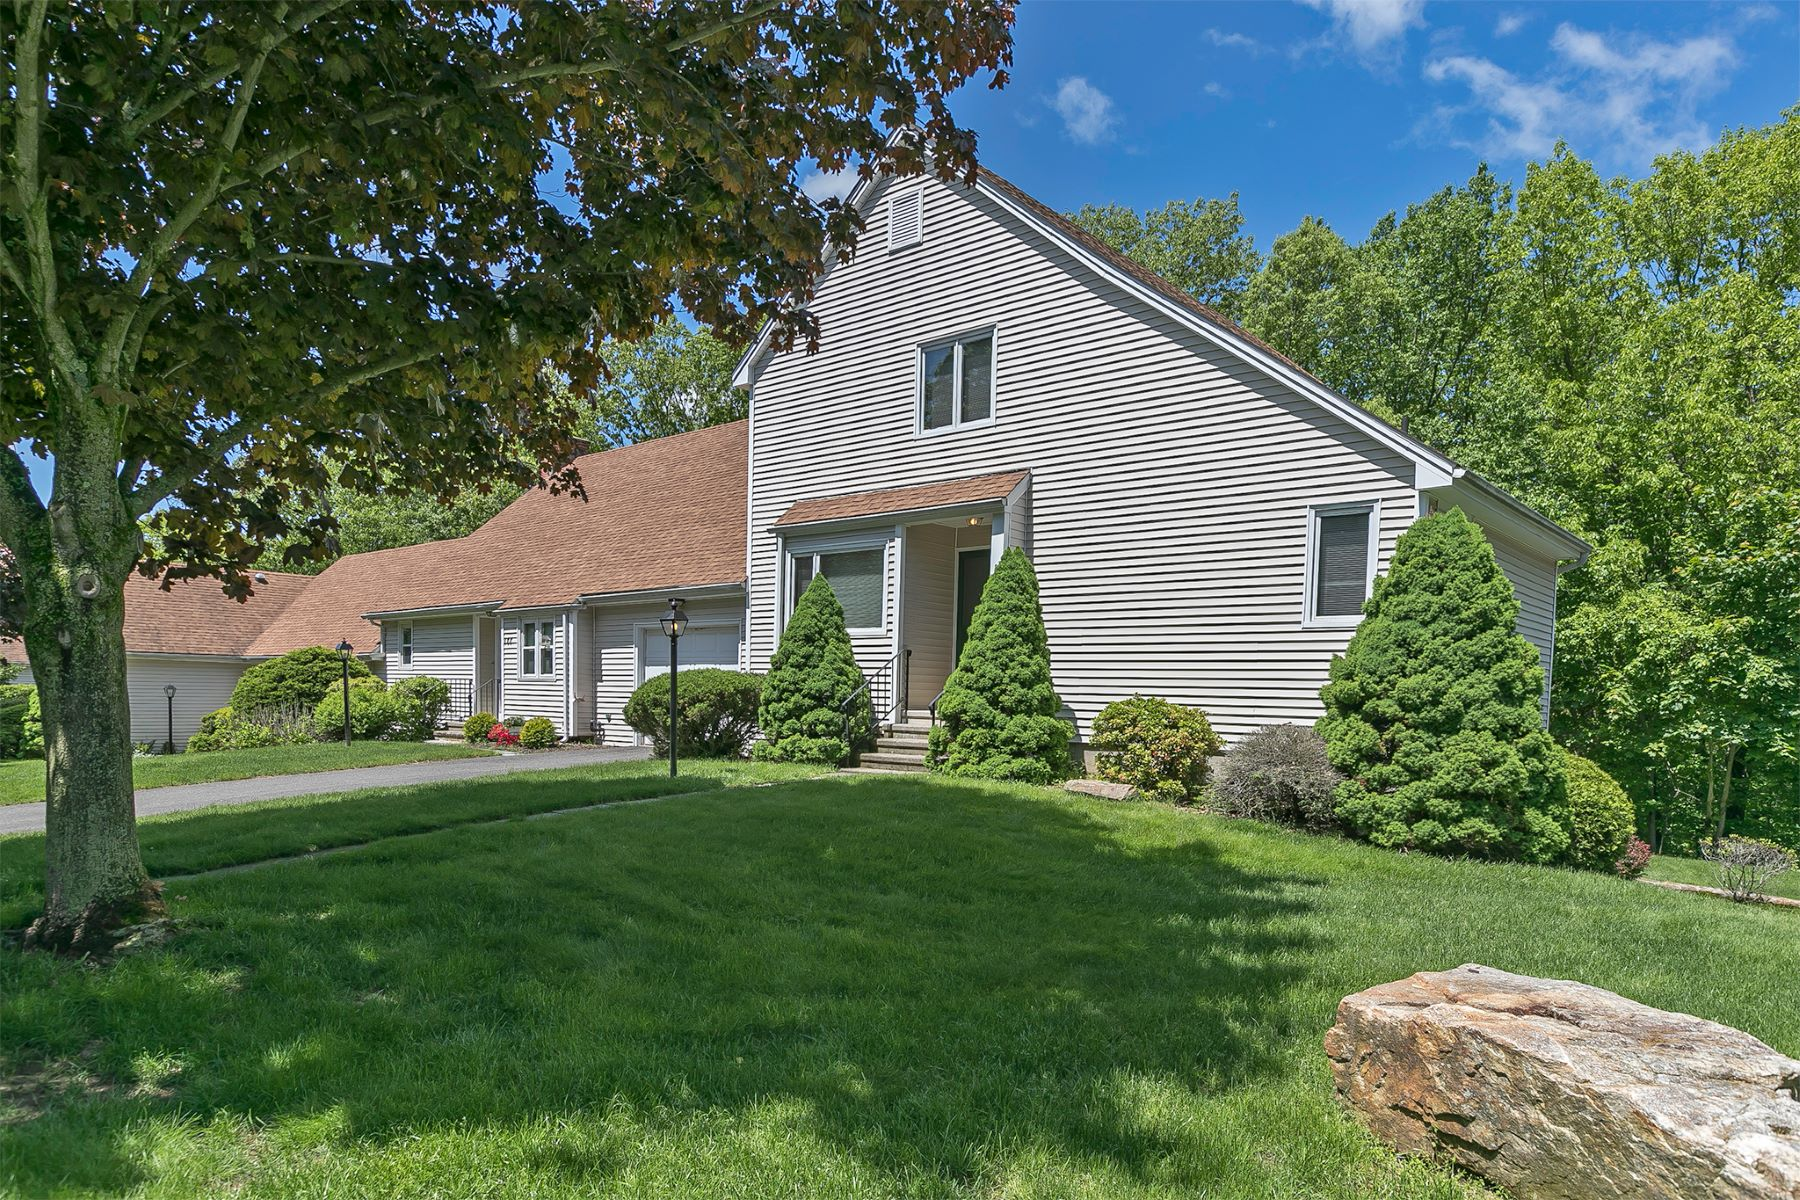 Condominium for Sale at 176 Pheasant Ridge 176 Pheasant Ridge 176 Shelton, Connecticut 06484 United States